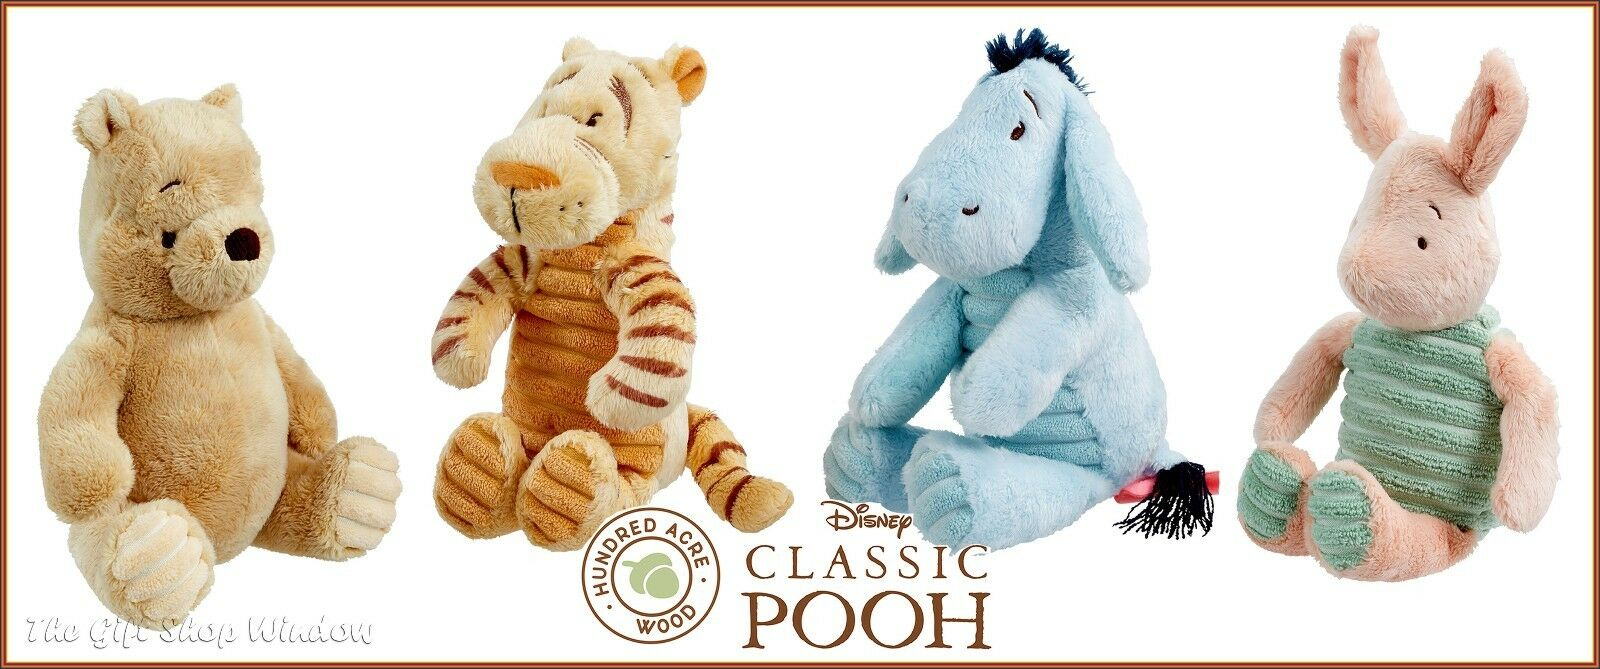 classic winnie the pooh tigger piglet or eeyore plush toy